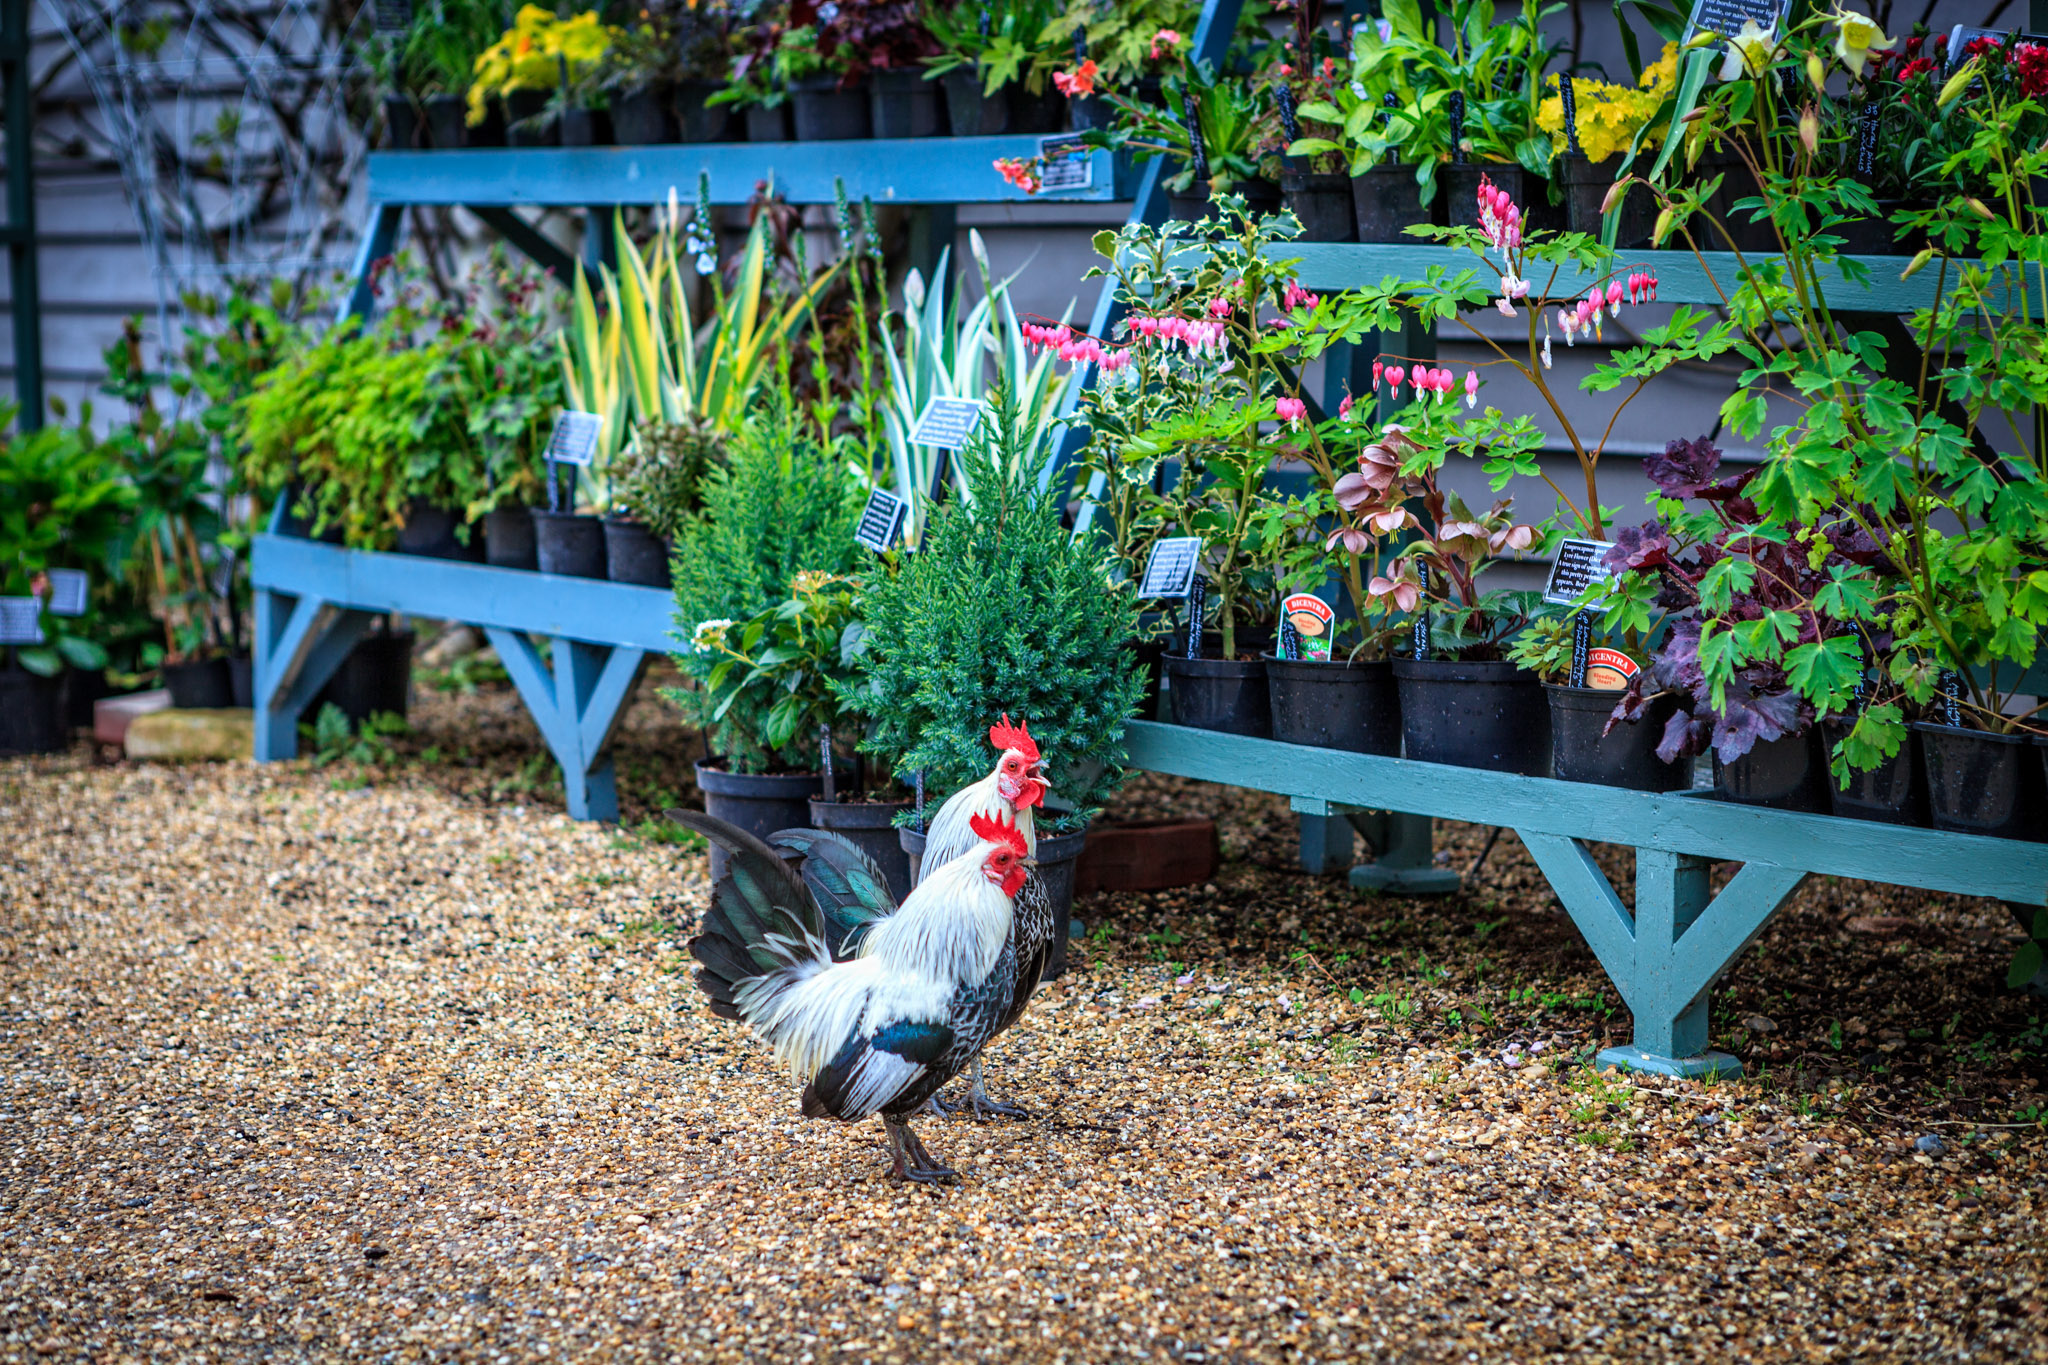 Two roosters in front of flower display